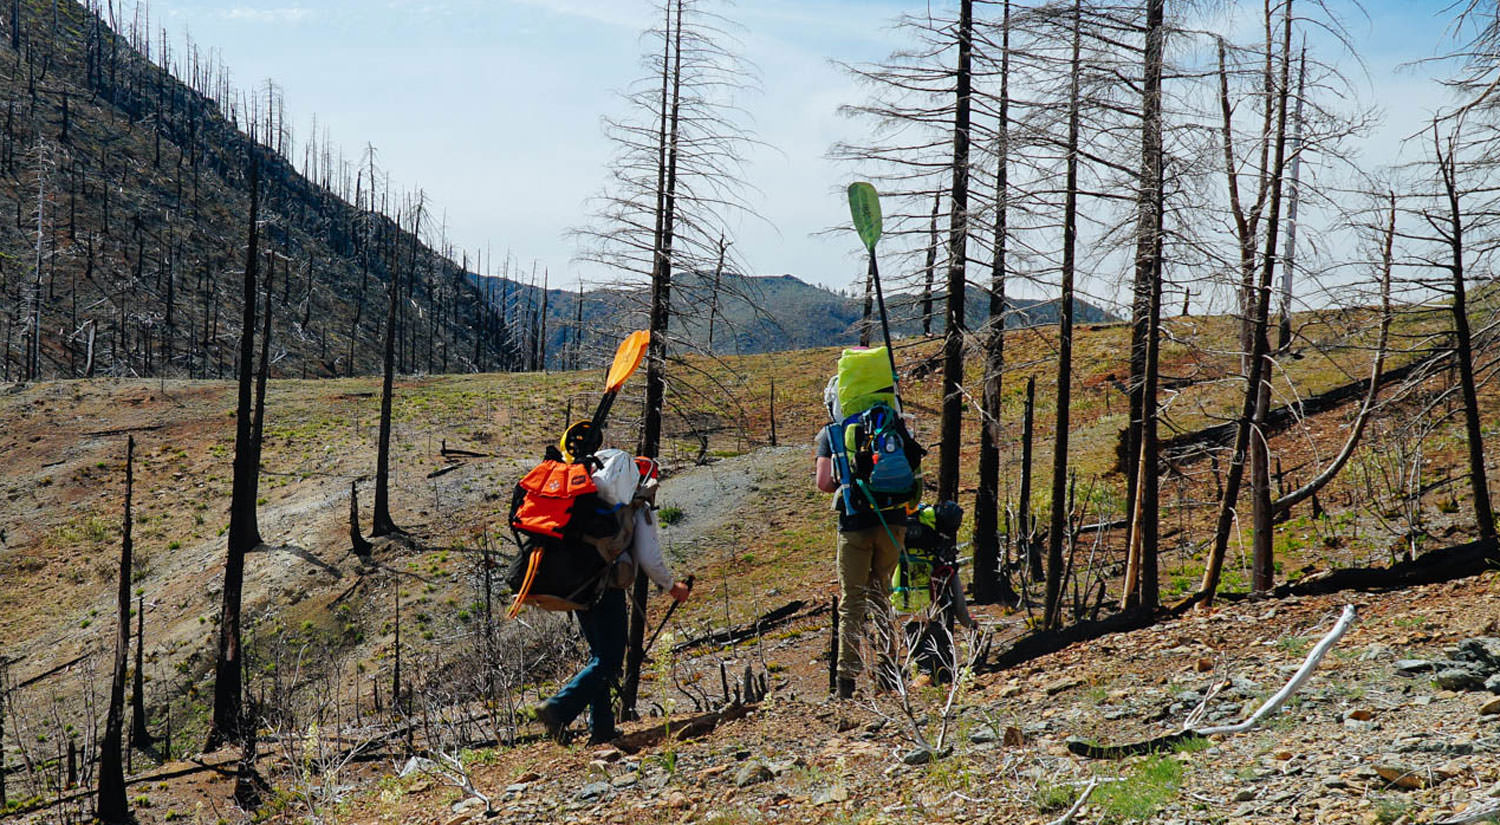 Two people hike with inflatable rafts and paddles on their backs through tree regrowth.